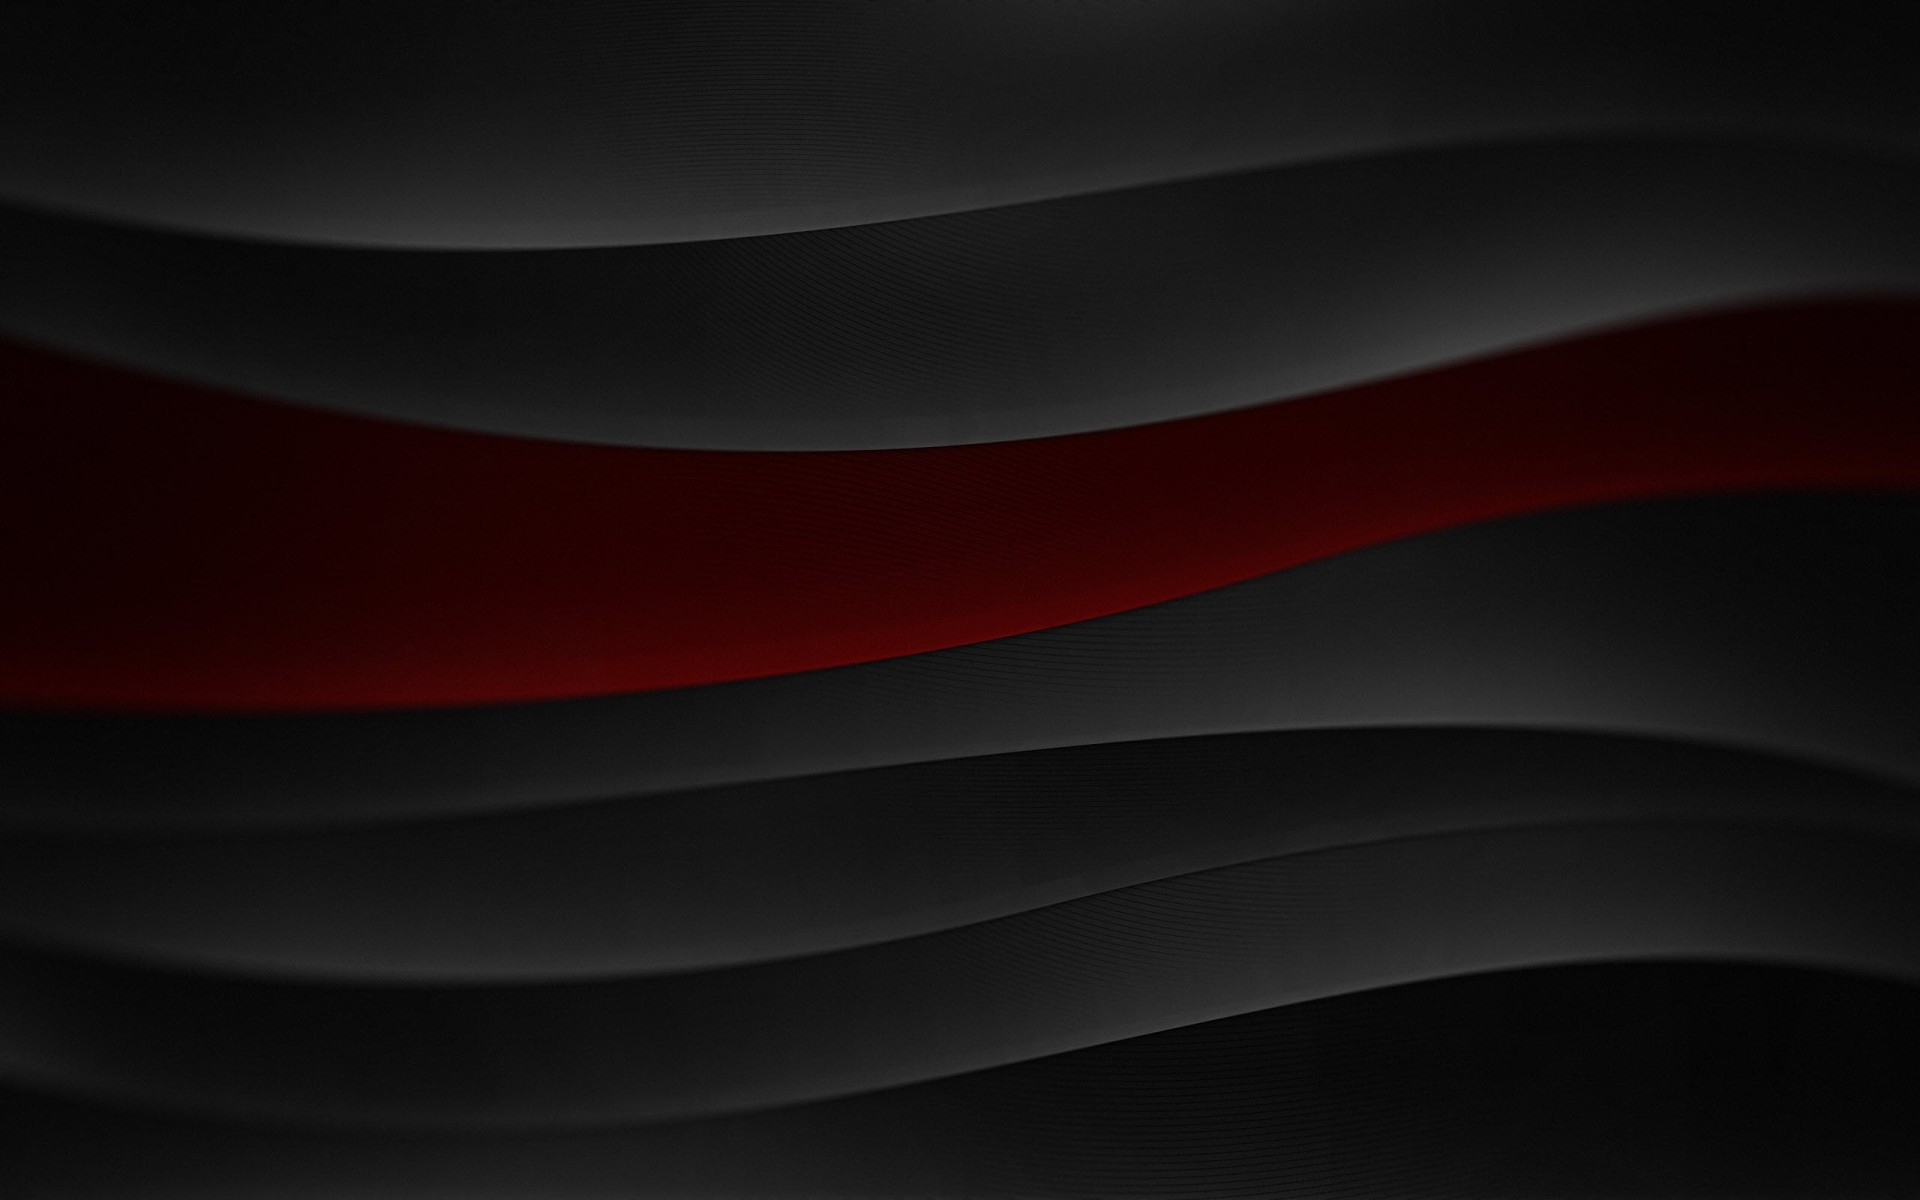 Add these curated black and red abstract wallpaper backgrounds to your